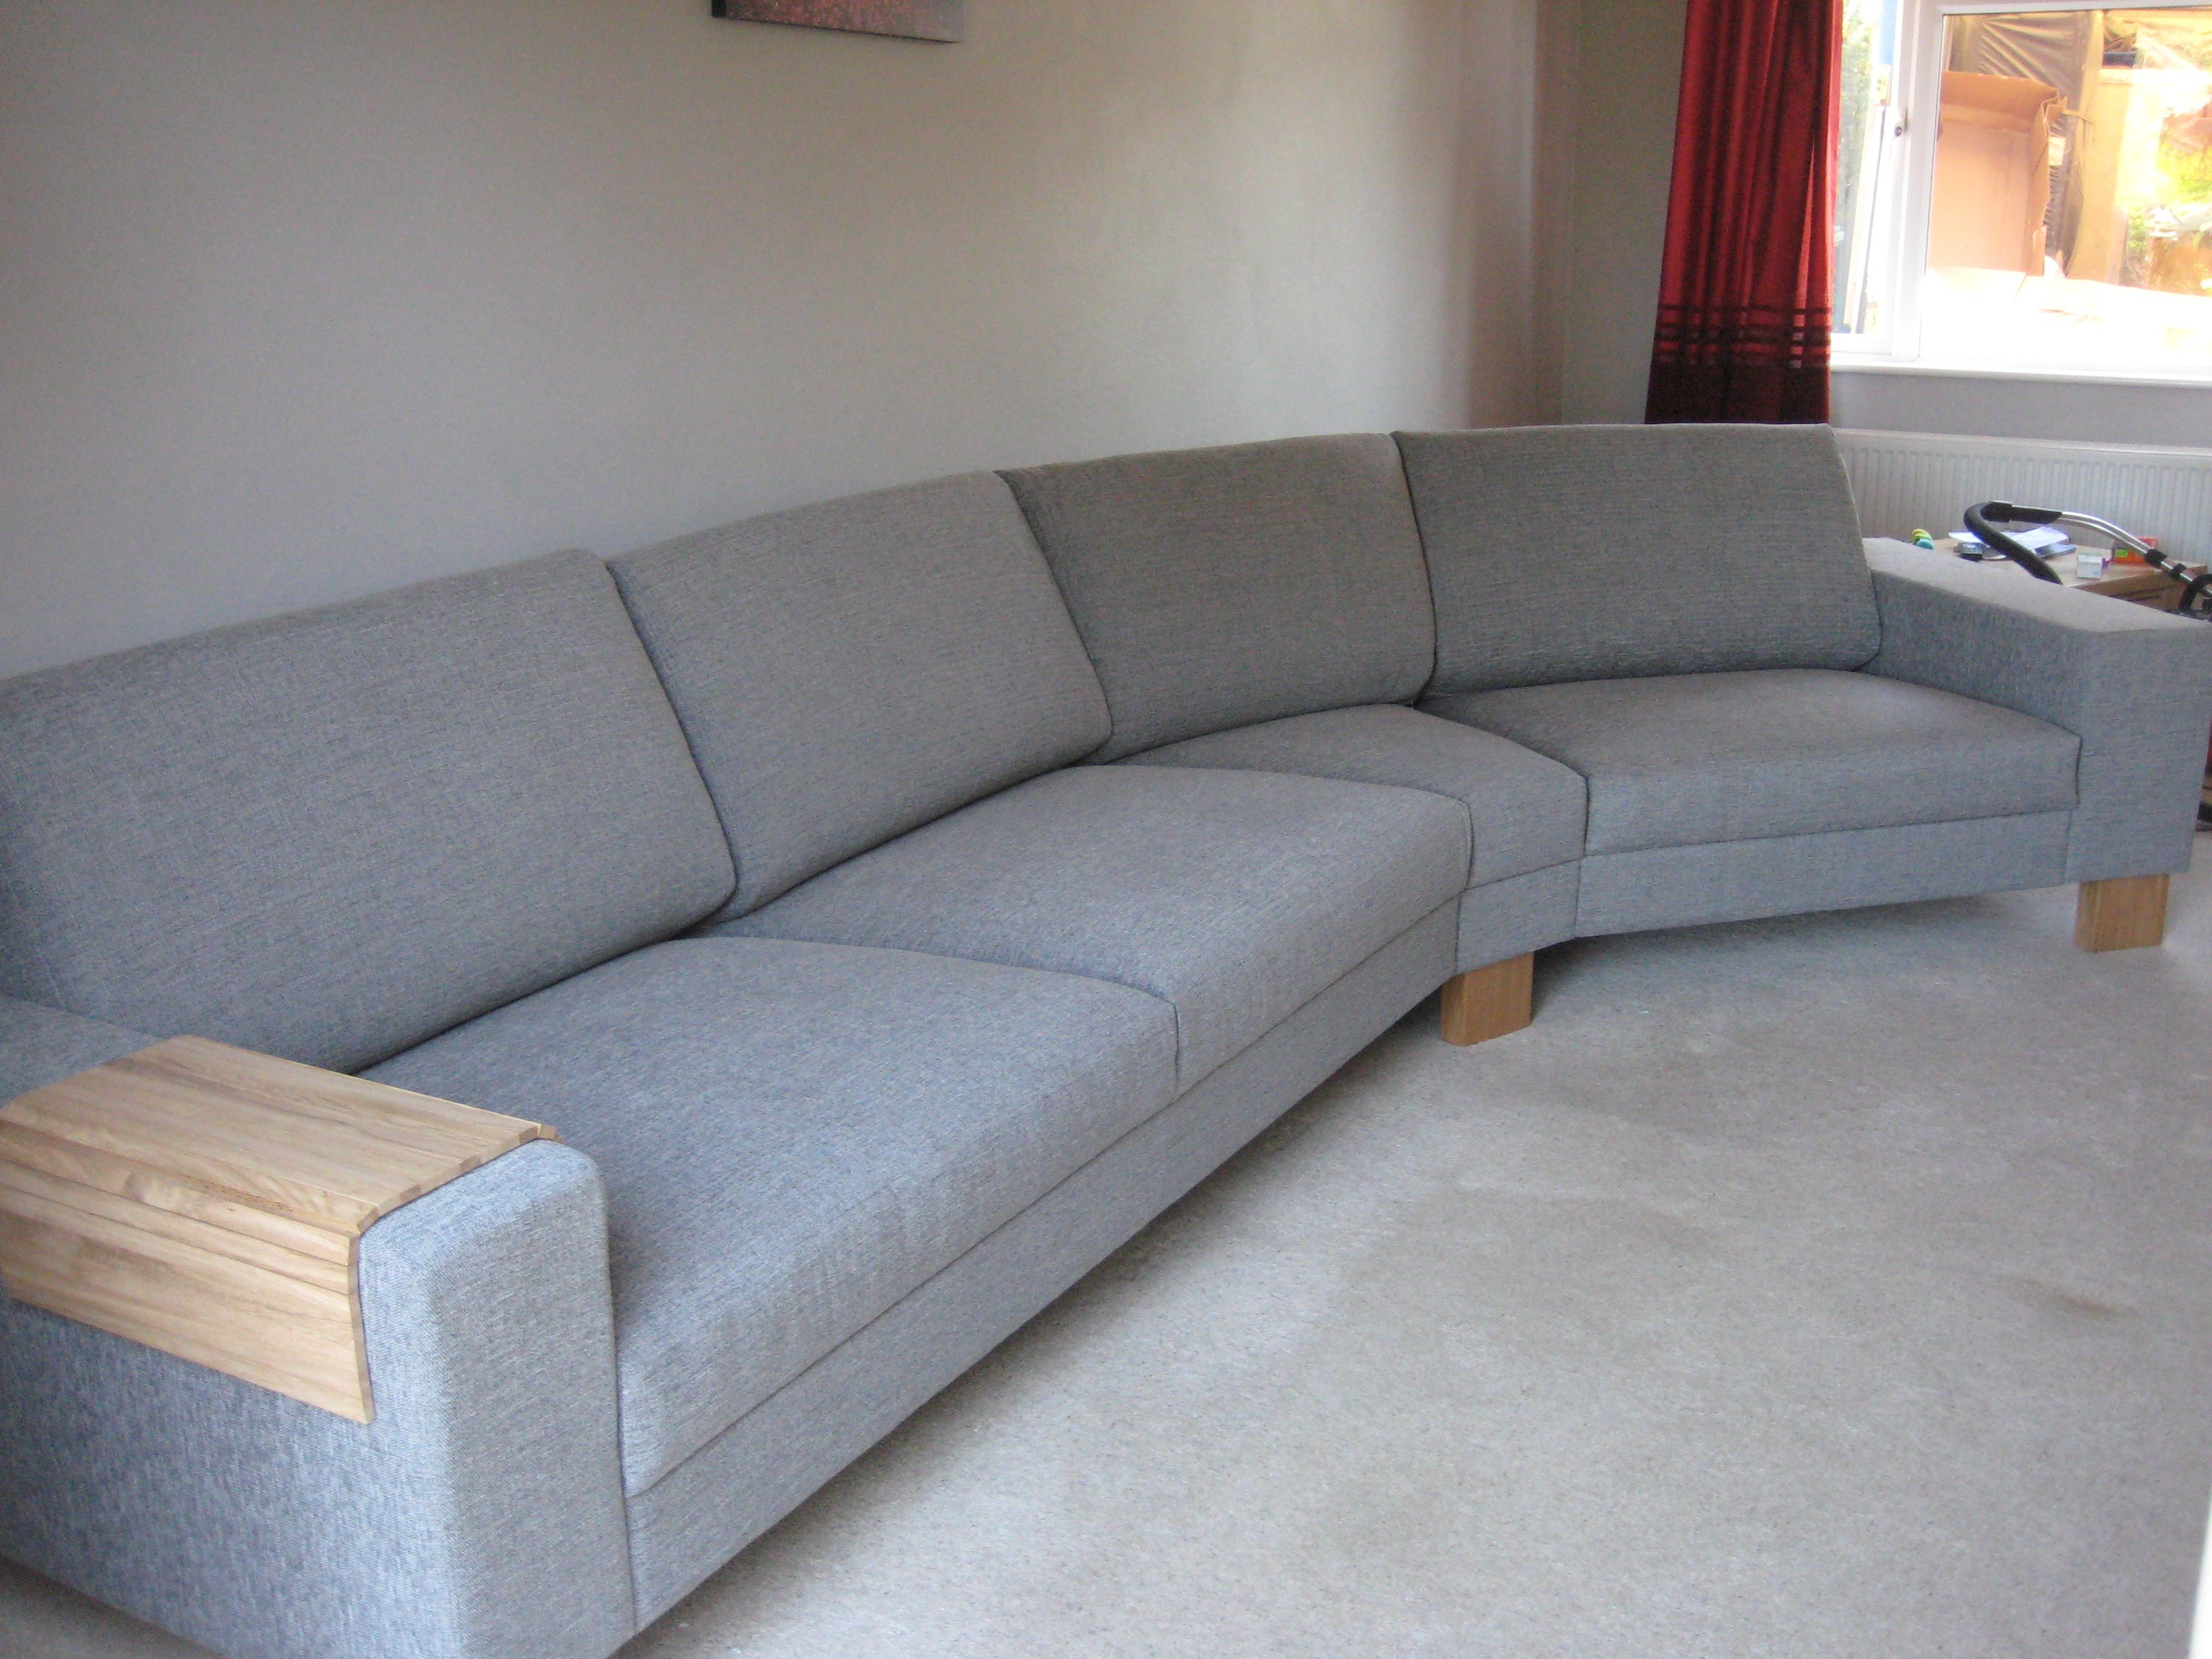 45 Degree Sectional Sofa Norwalk Ord Sectional Sofa With 2